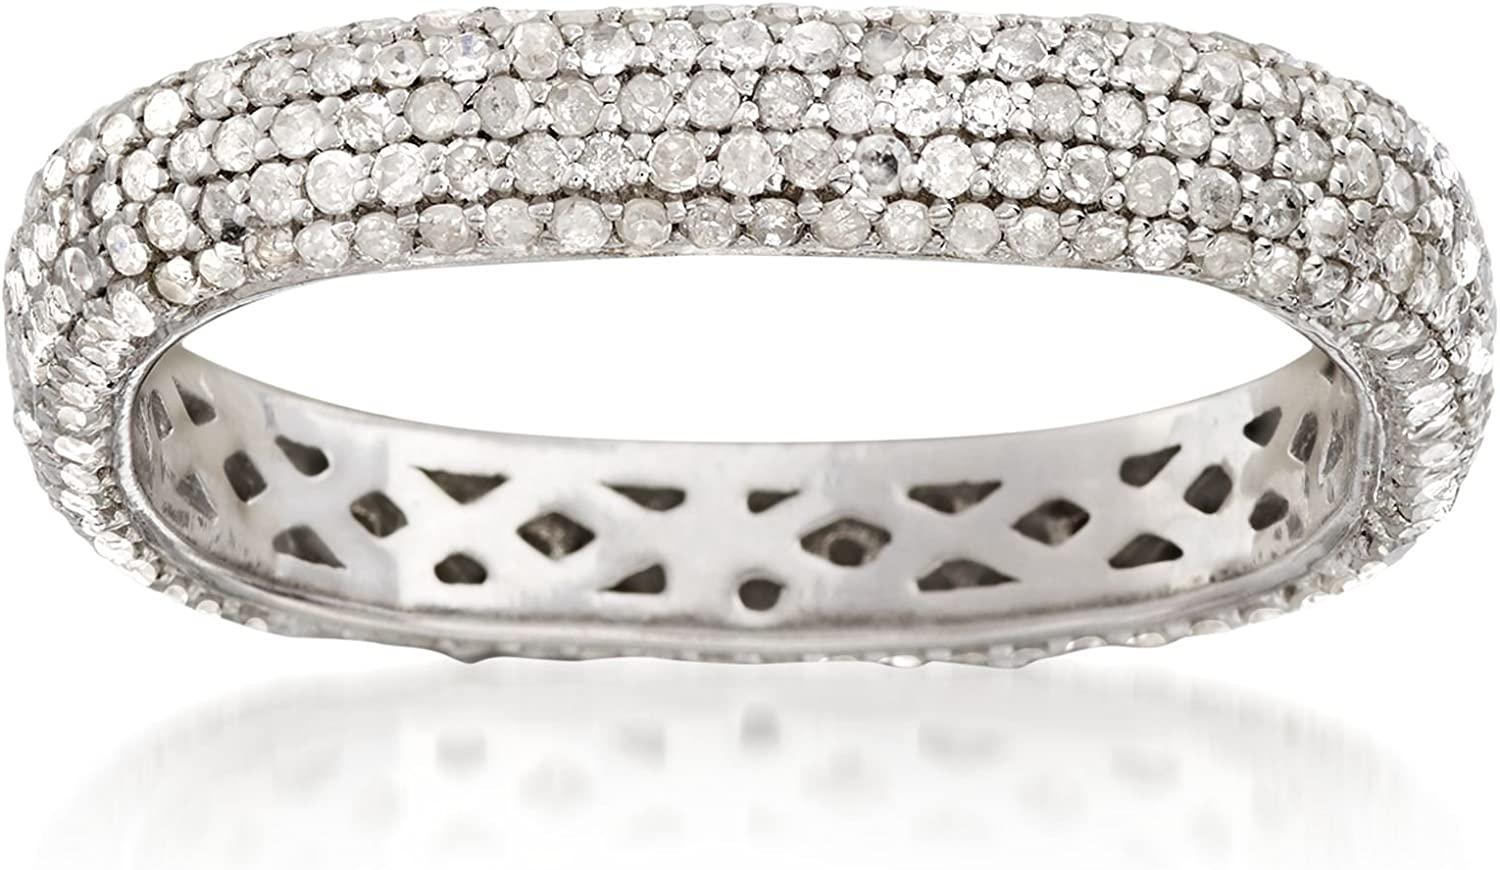 Max 42% OFF 1 year warranty Ross-Simons ct. t.w. Pave in Diamond Squared Eternity Band